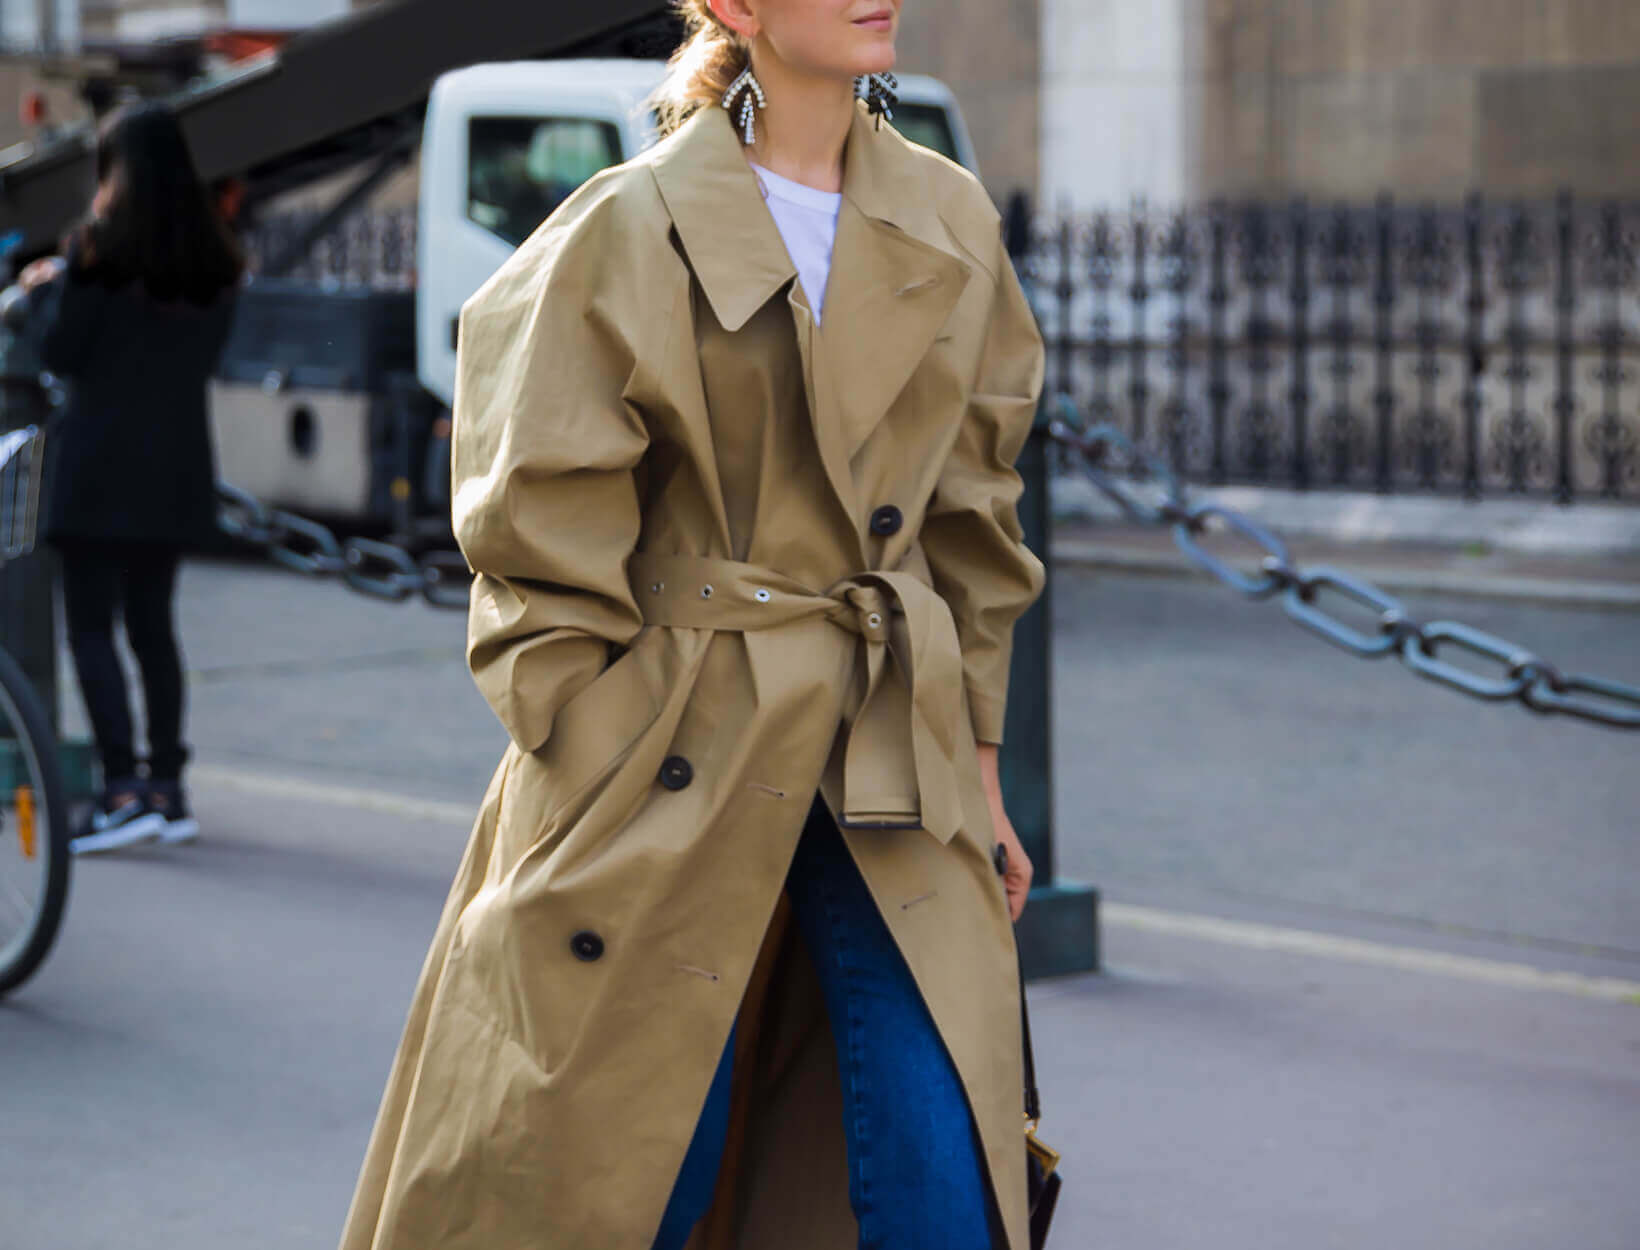 he_Style_Update-Trench_Coat_and_How_to_Wear_It-1